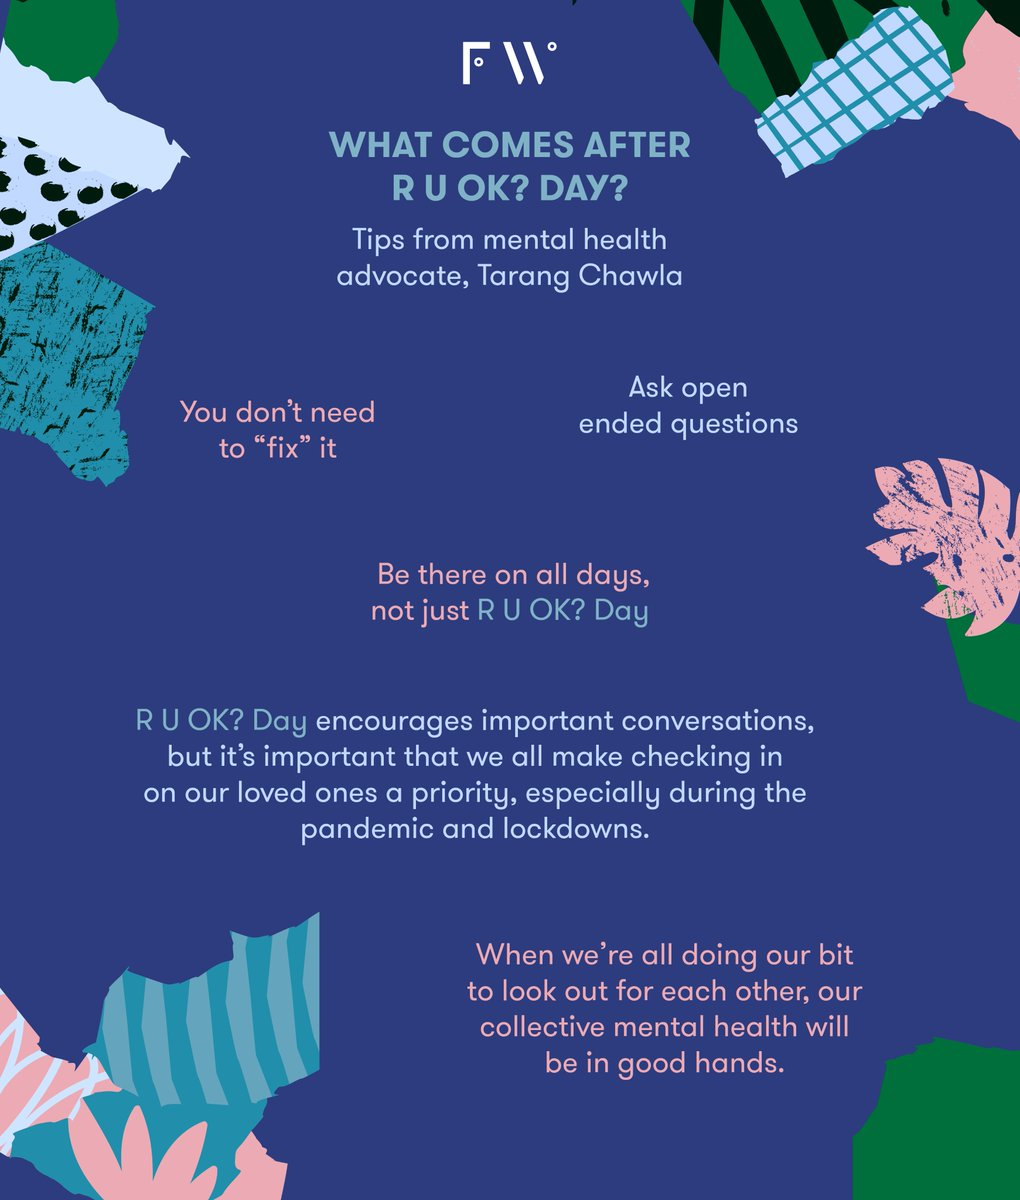 Some wonderful tips on what comes after R U OK from mental health advocate @tarang_chawla 👏 If you're struggling, remember there is always help. You can reach Lifeline on 13 11 14 or Beyond Blue on 1300 224 636.